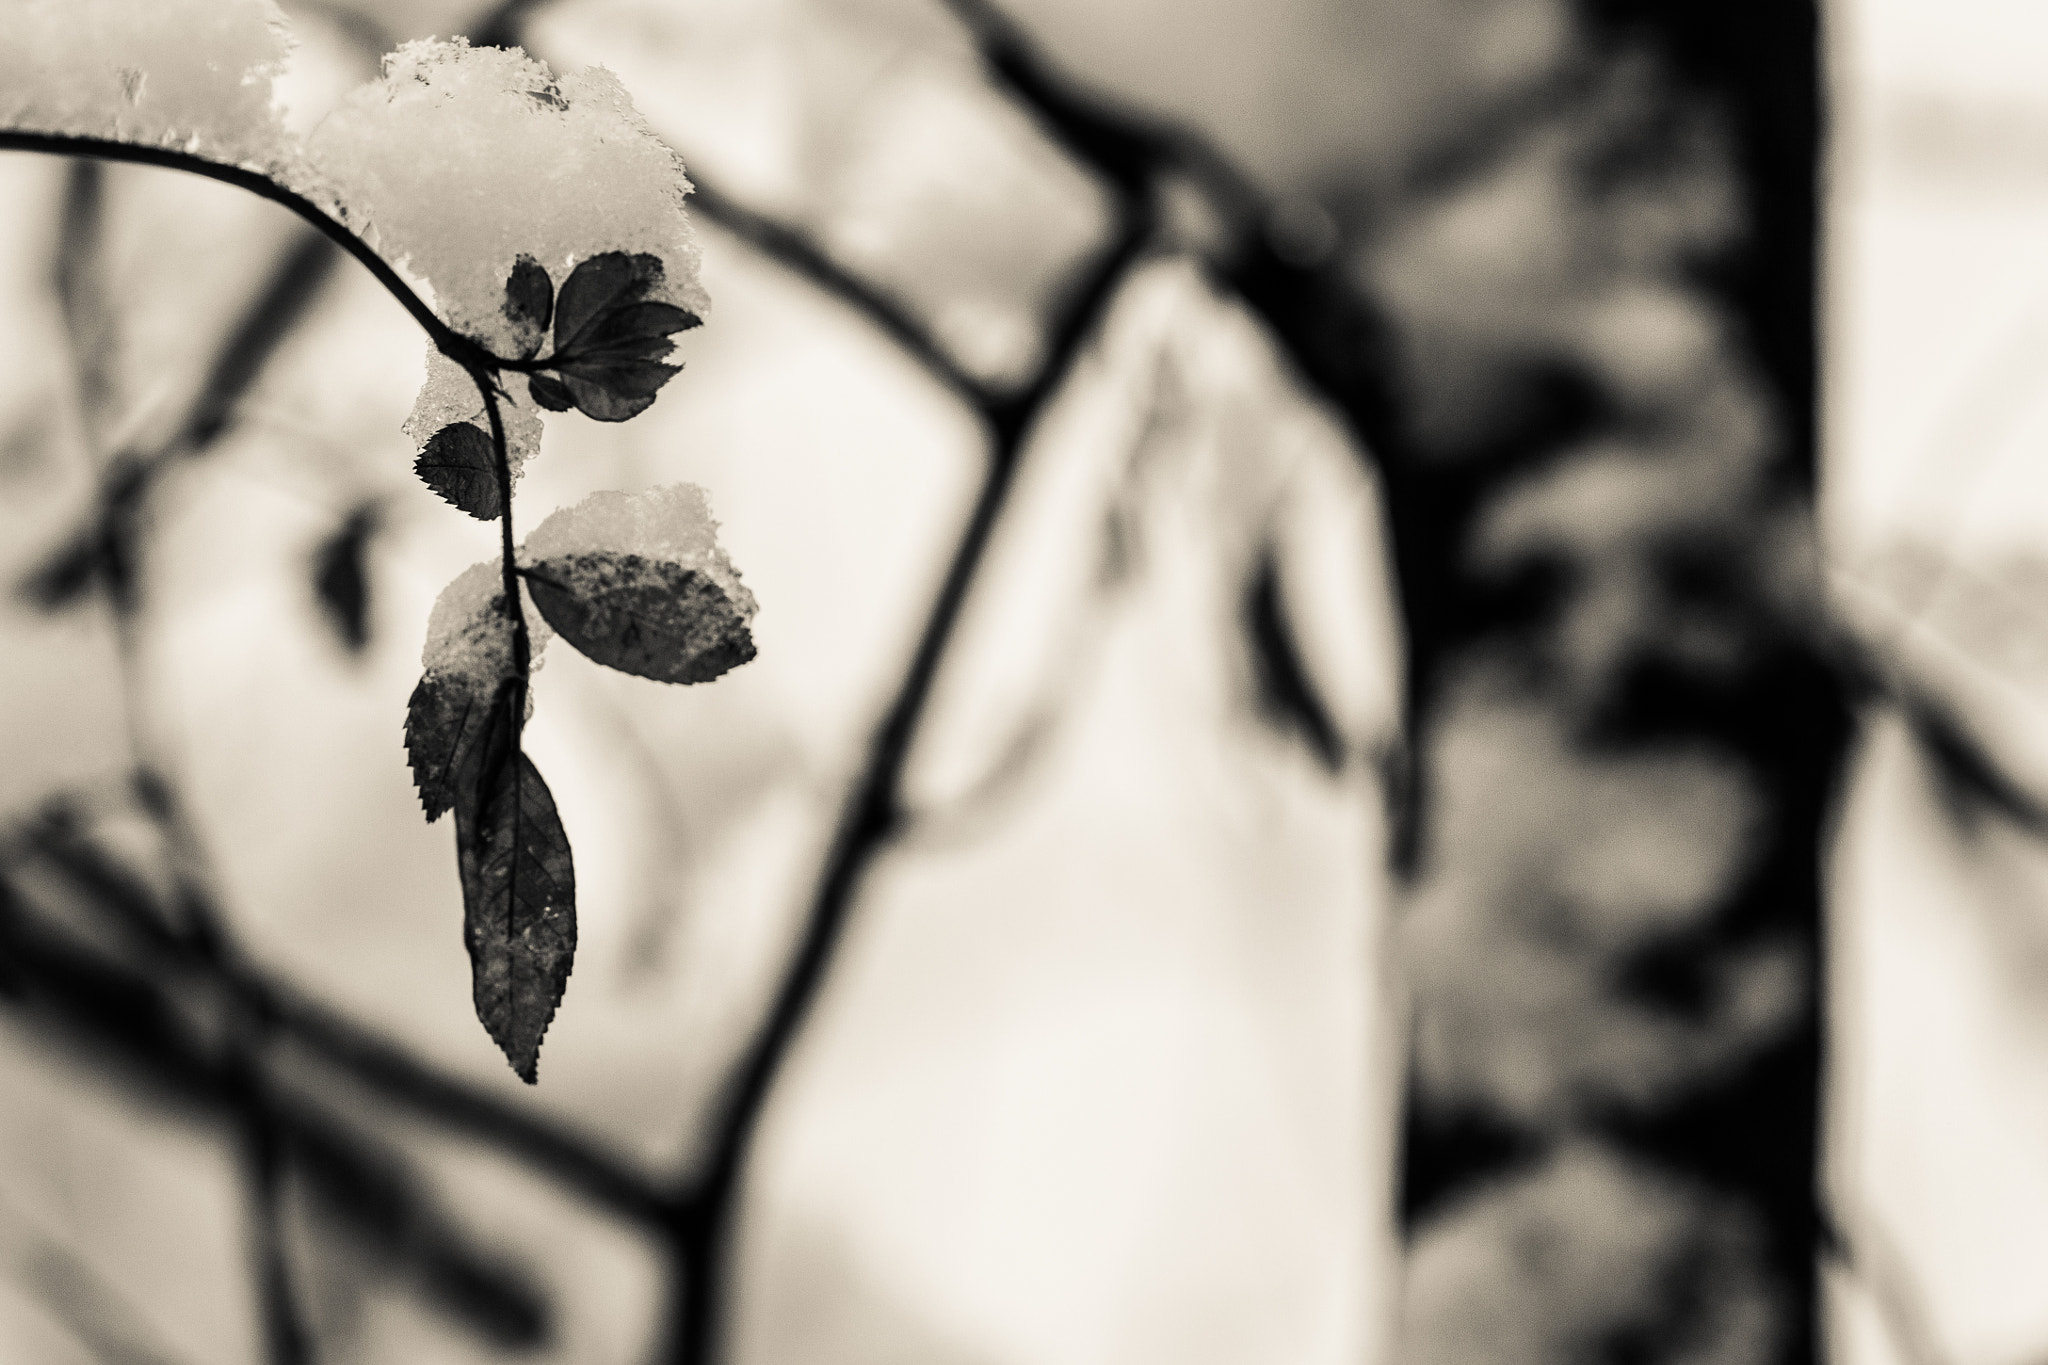 Photograph leaves and snow by Andreas Levi on 500px